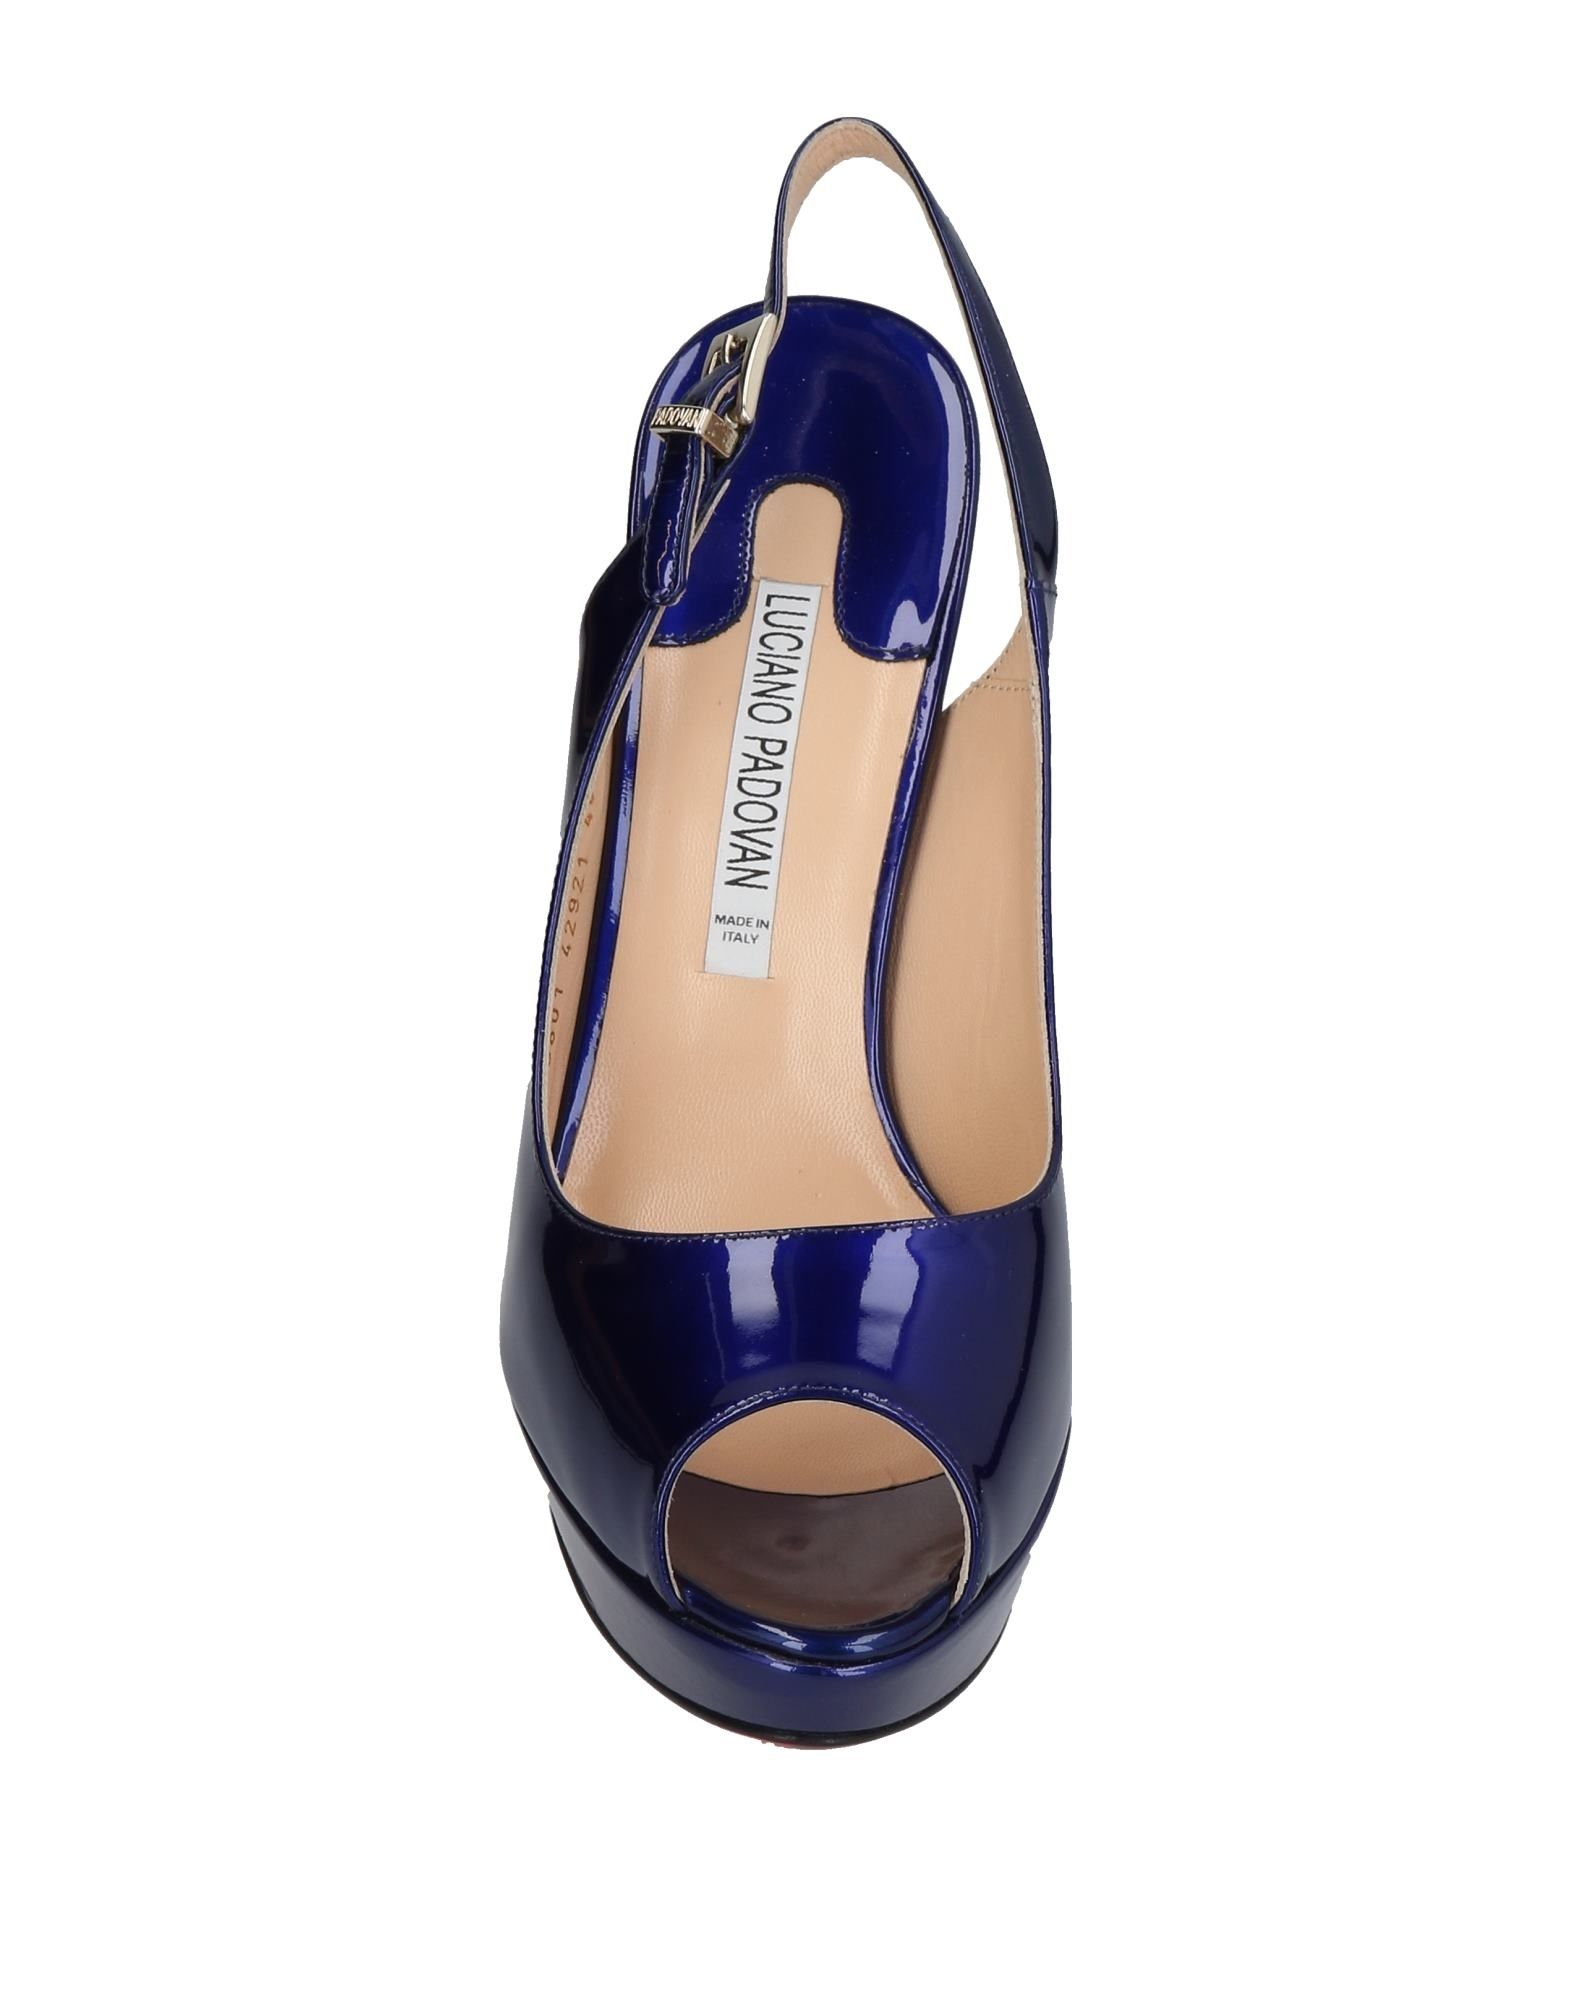 Chaussures - Tribunaux Luciano Padovan NJI31